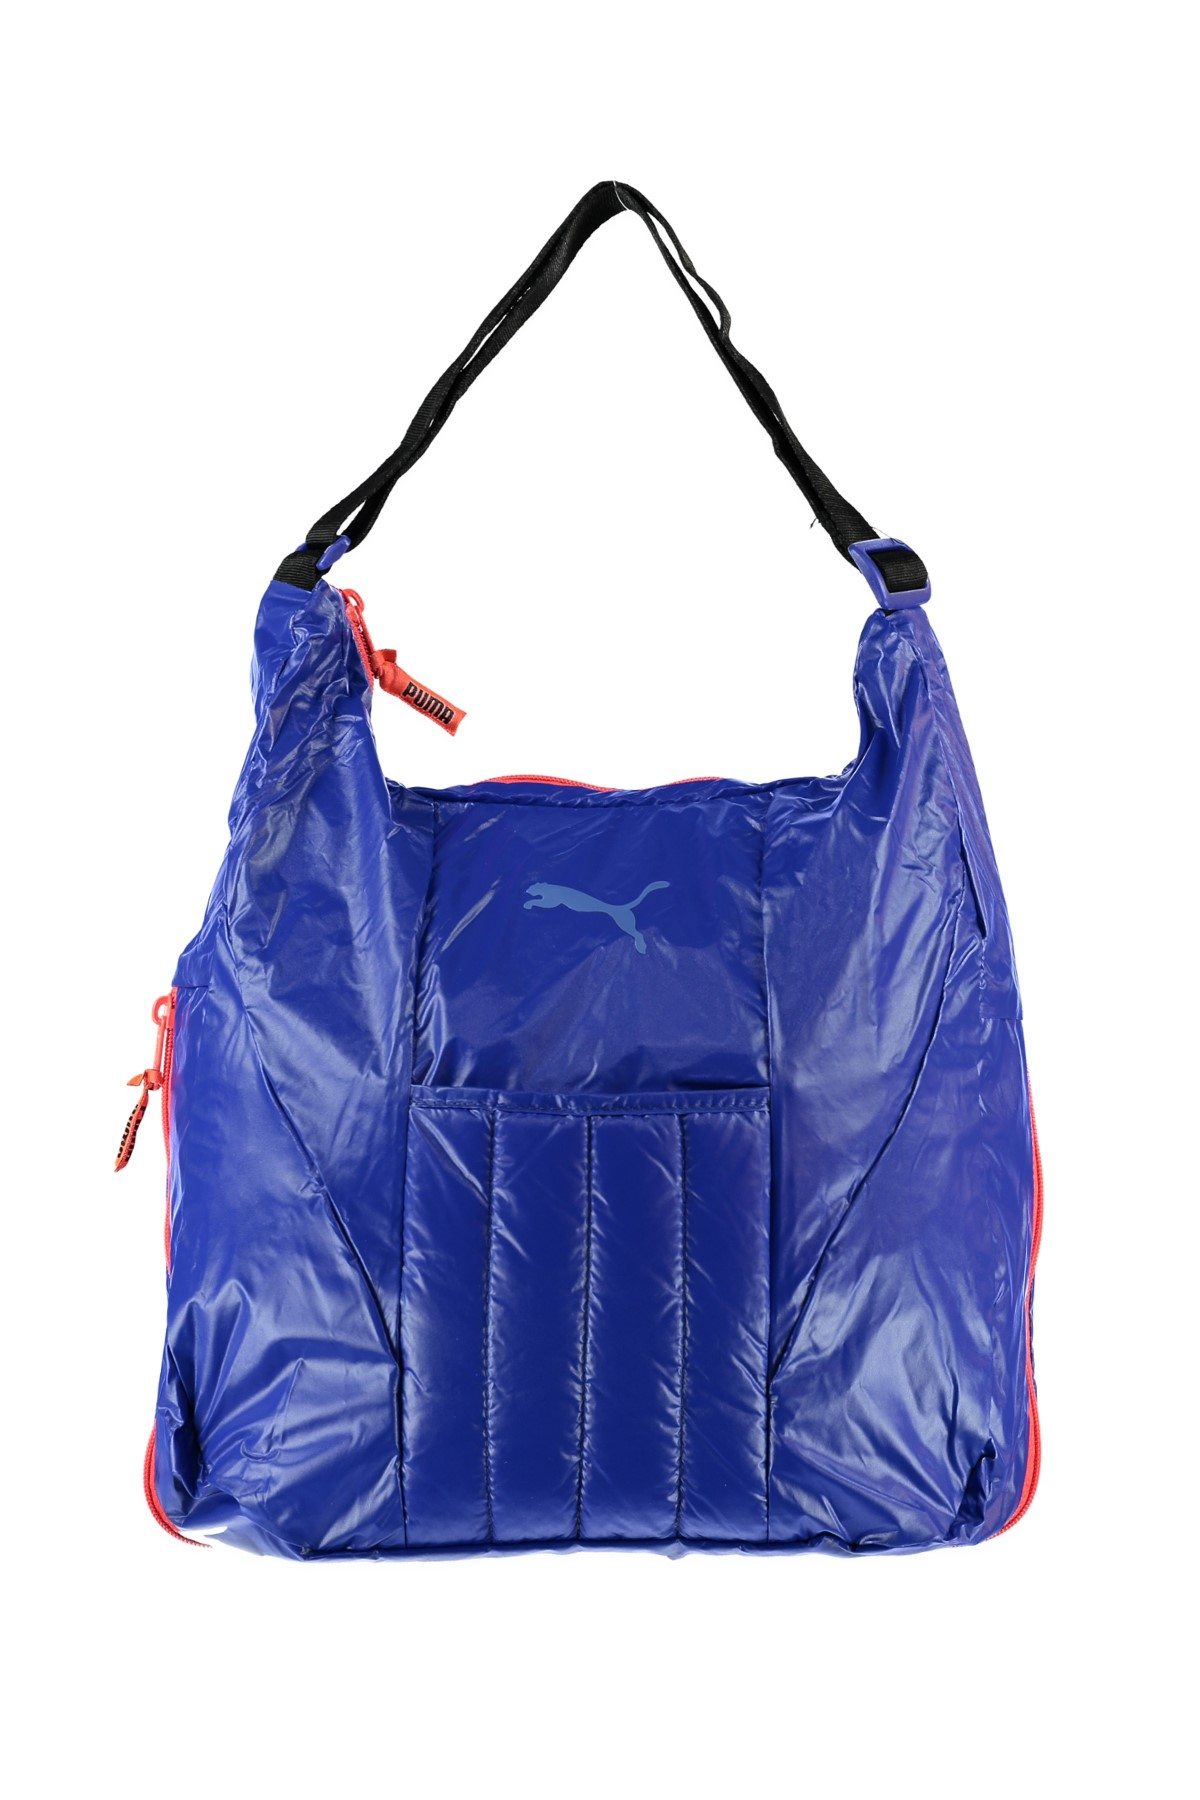 puma kadın spor çantası - fit at shoulder bag black-royal blu -